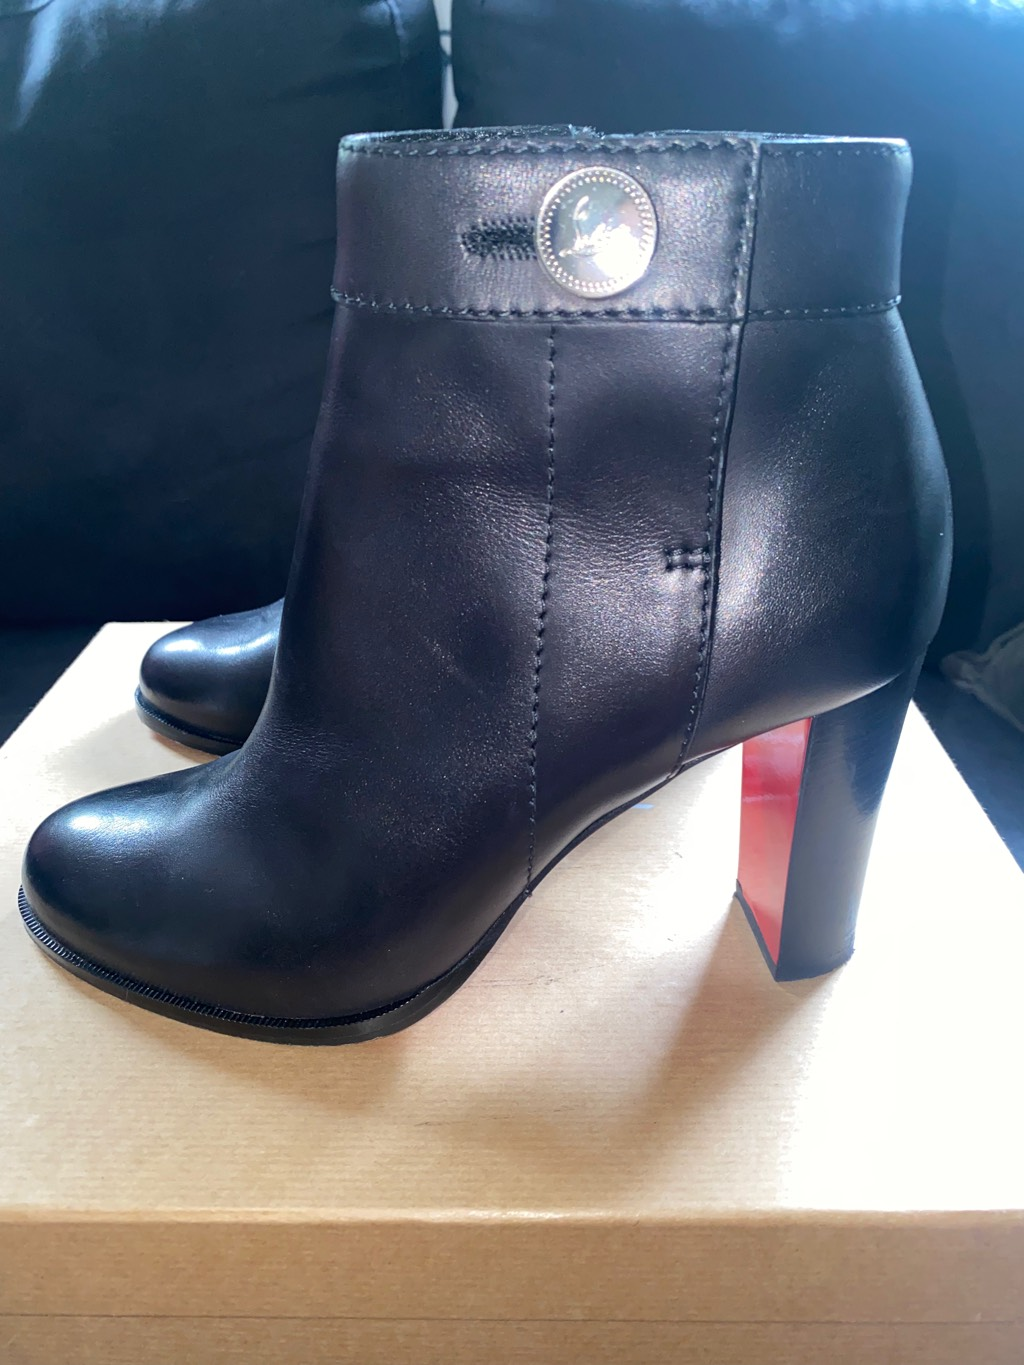 Christian Louboutin Jenis Boots 85 calf WORN ONLY ONCE FEW HOURS Christian Louboutin2